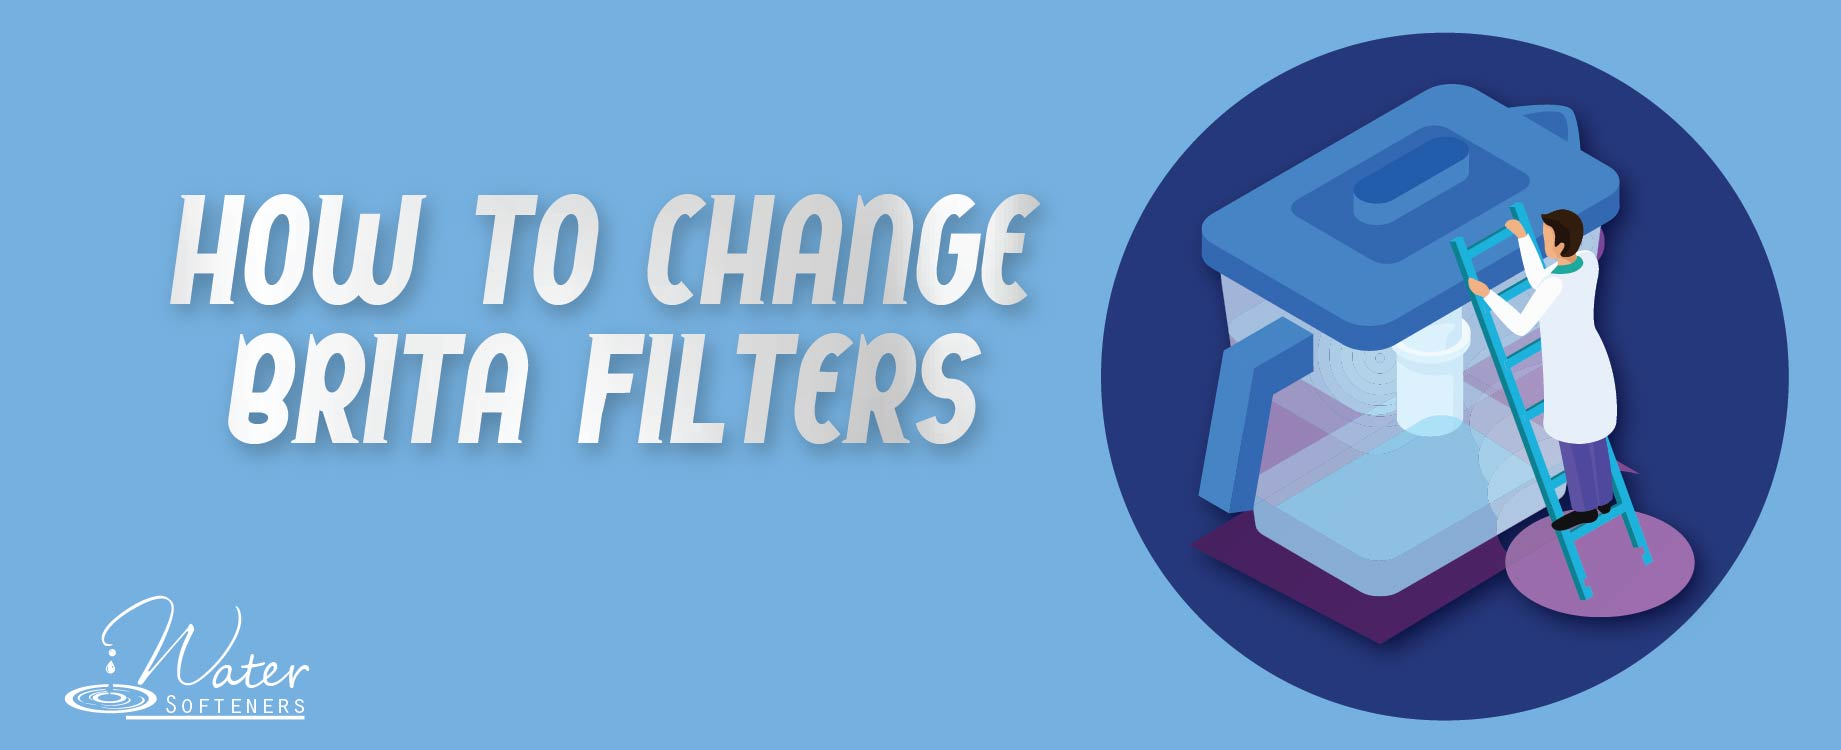 How to change Brita filters